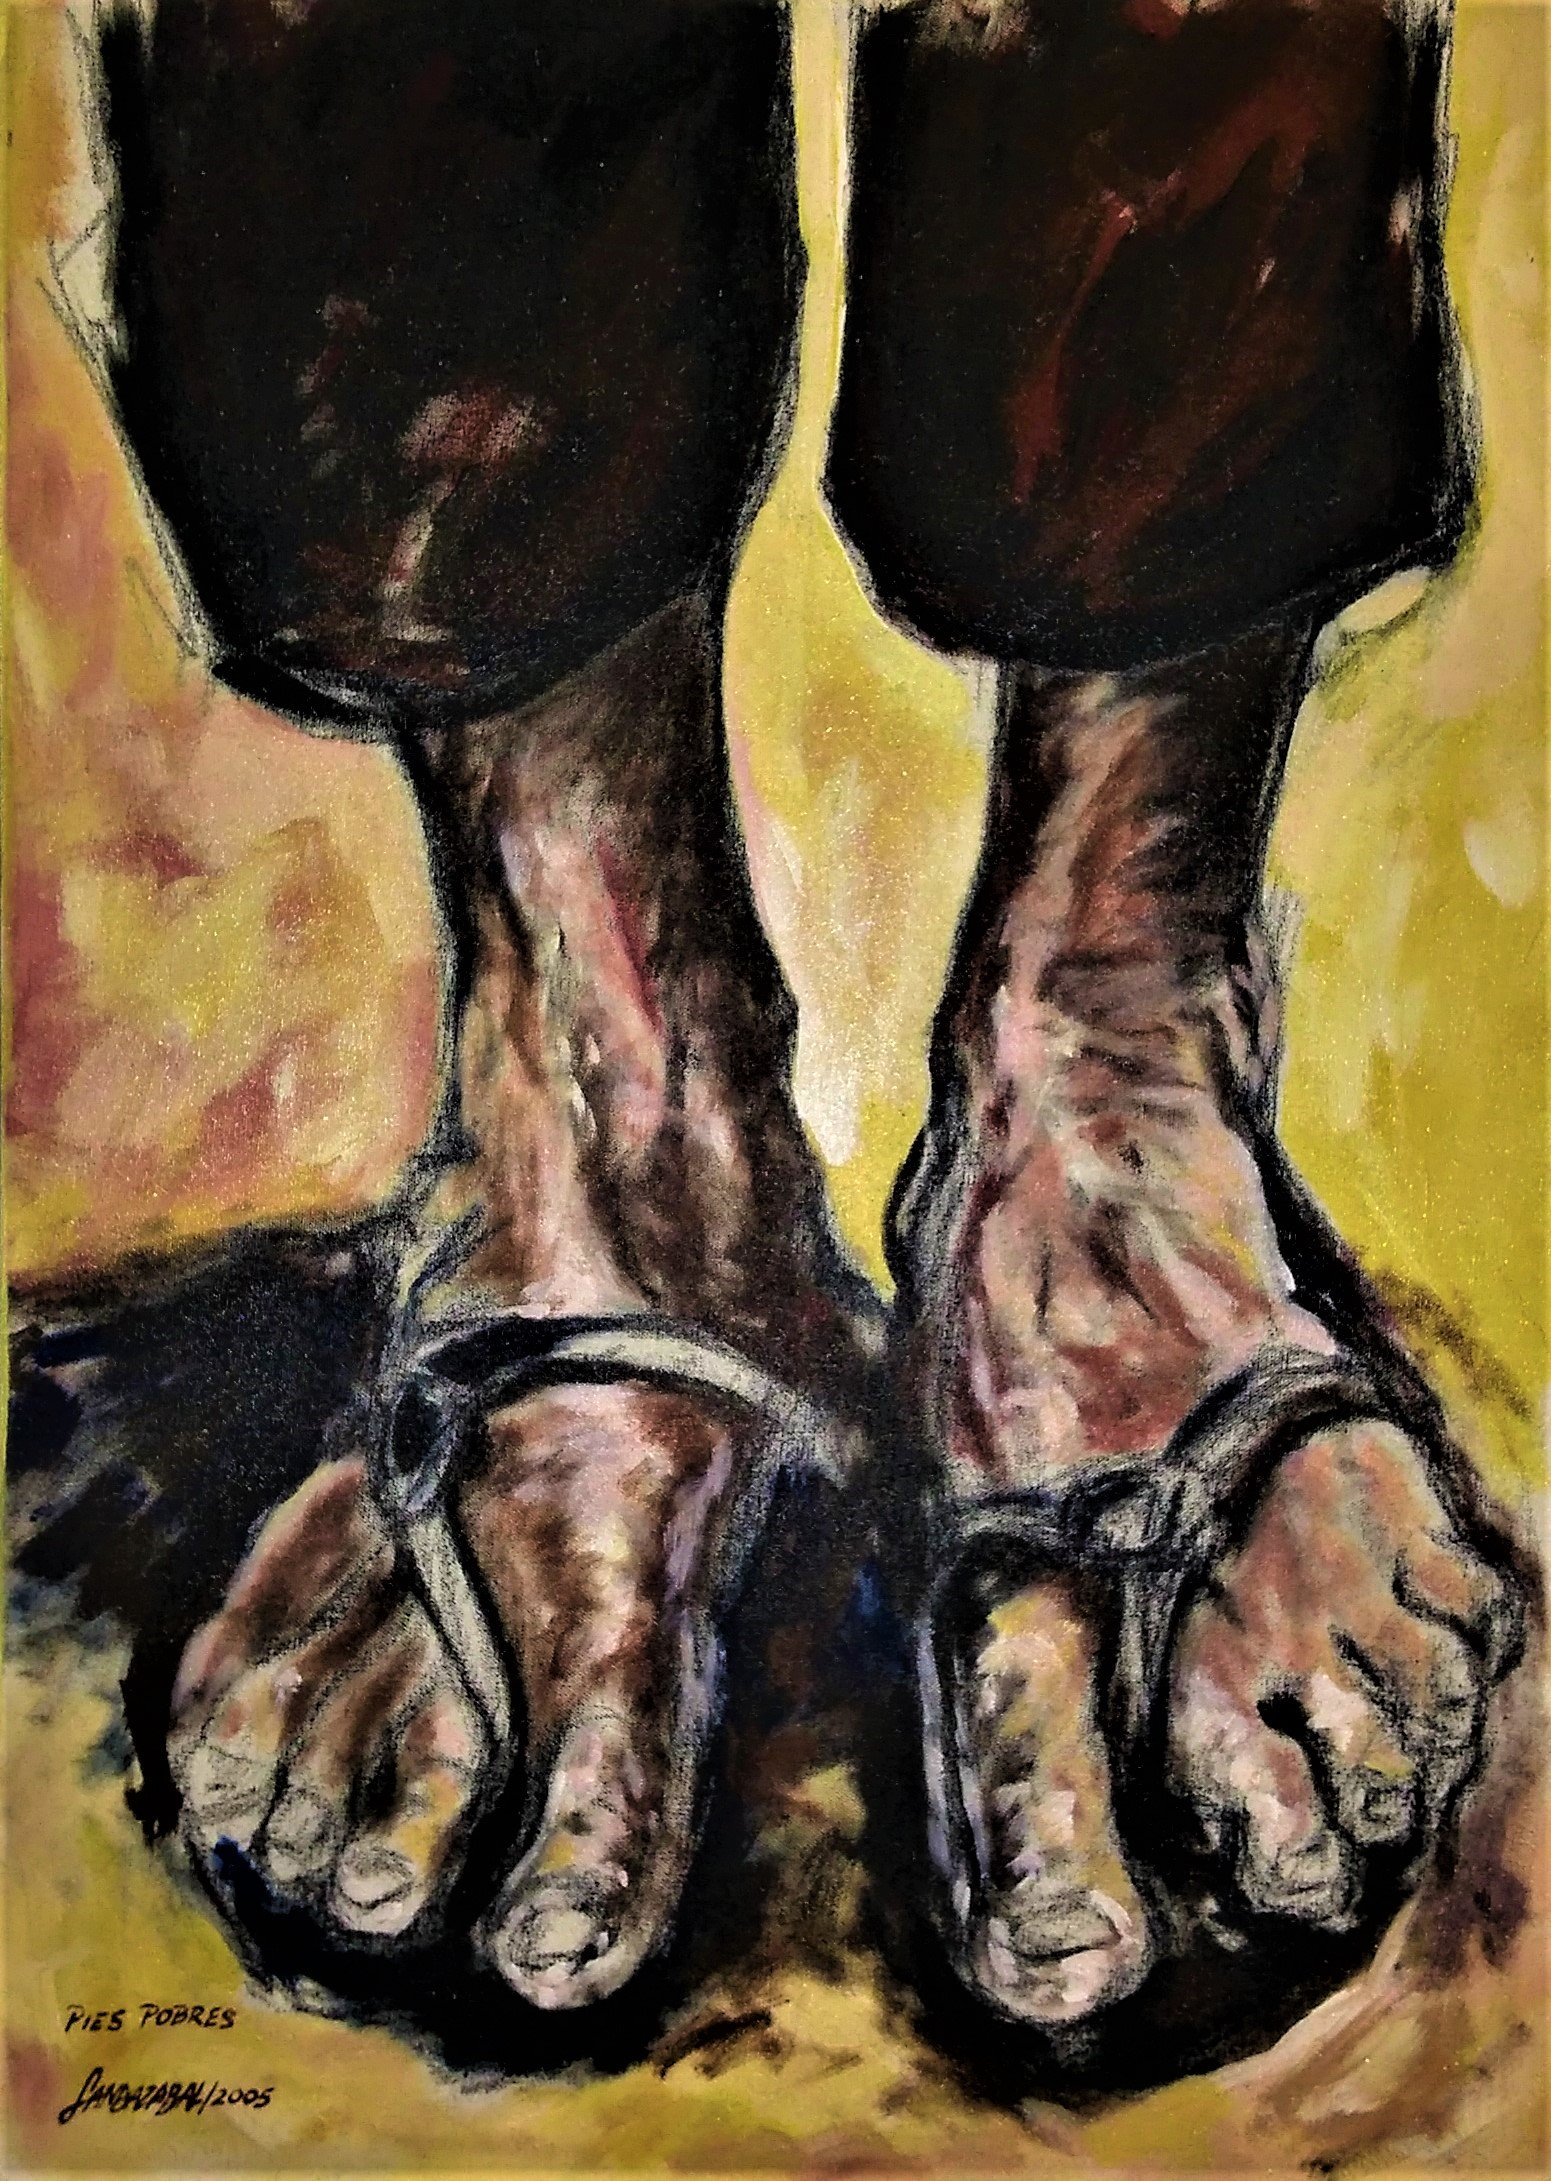 Francisco Landazabal; Poverty Feet, 2005, Original Painting Acrylic, 50 x 70 cm.